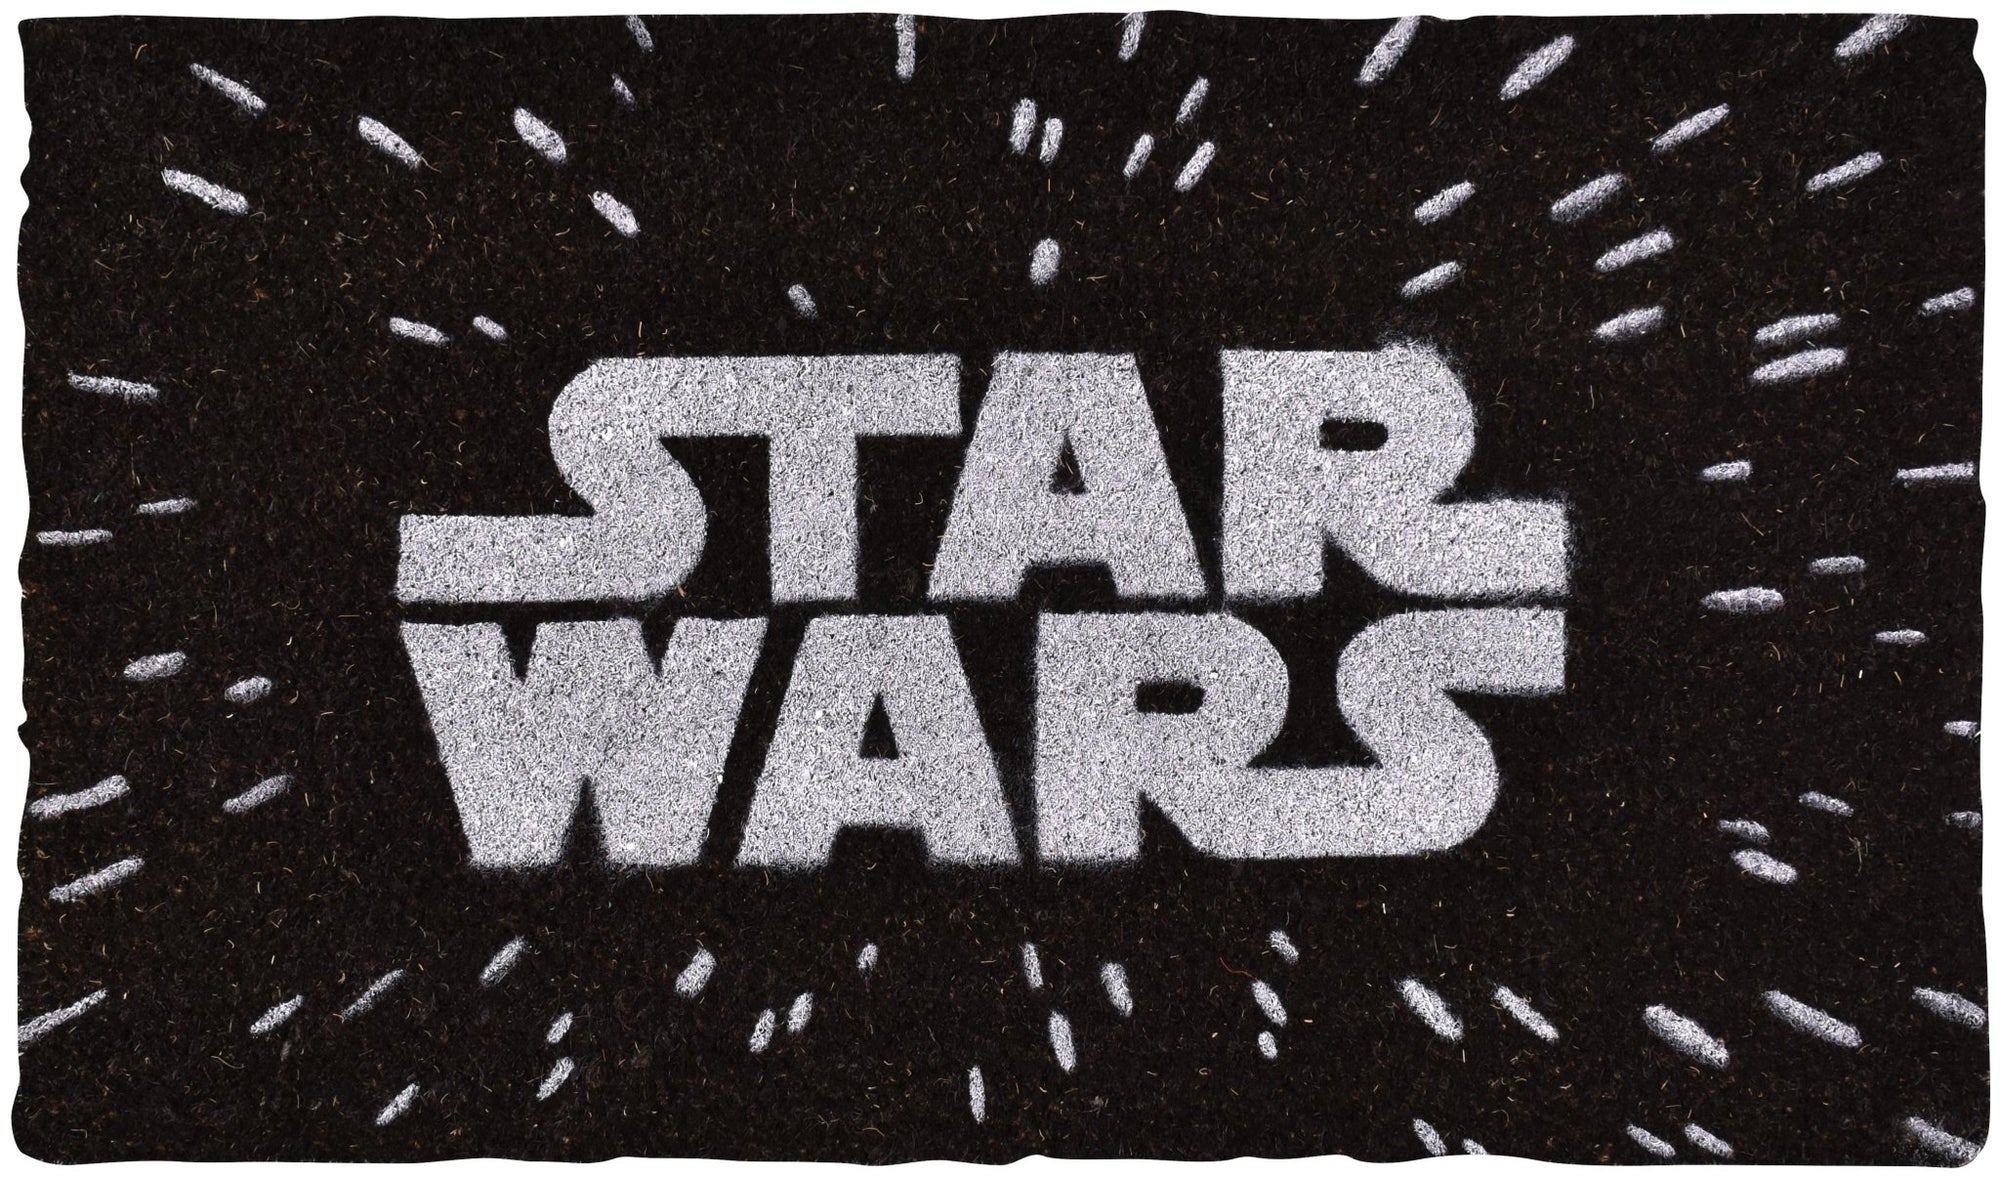 STAR WARS LOGO DOORMAT - EvoRetro Lets Game